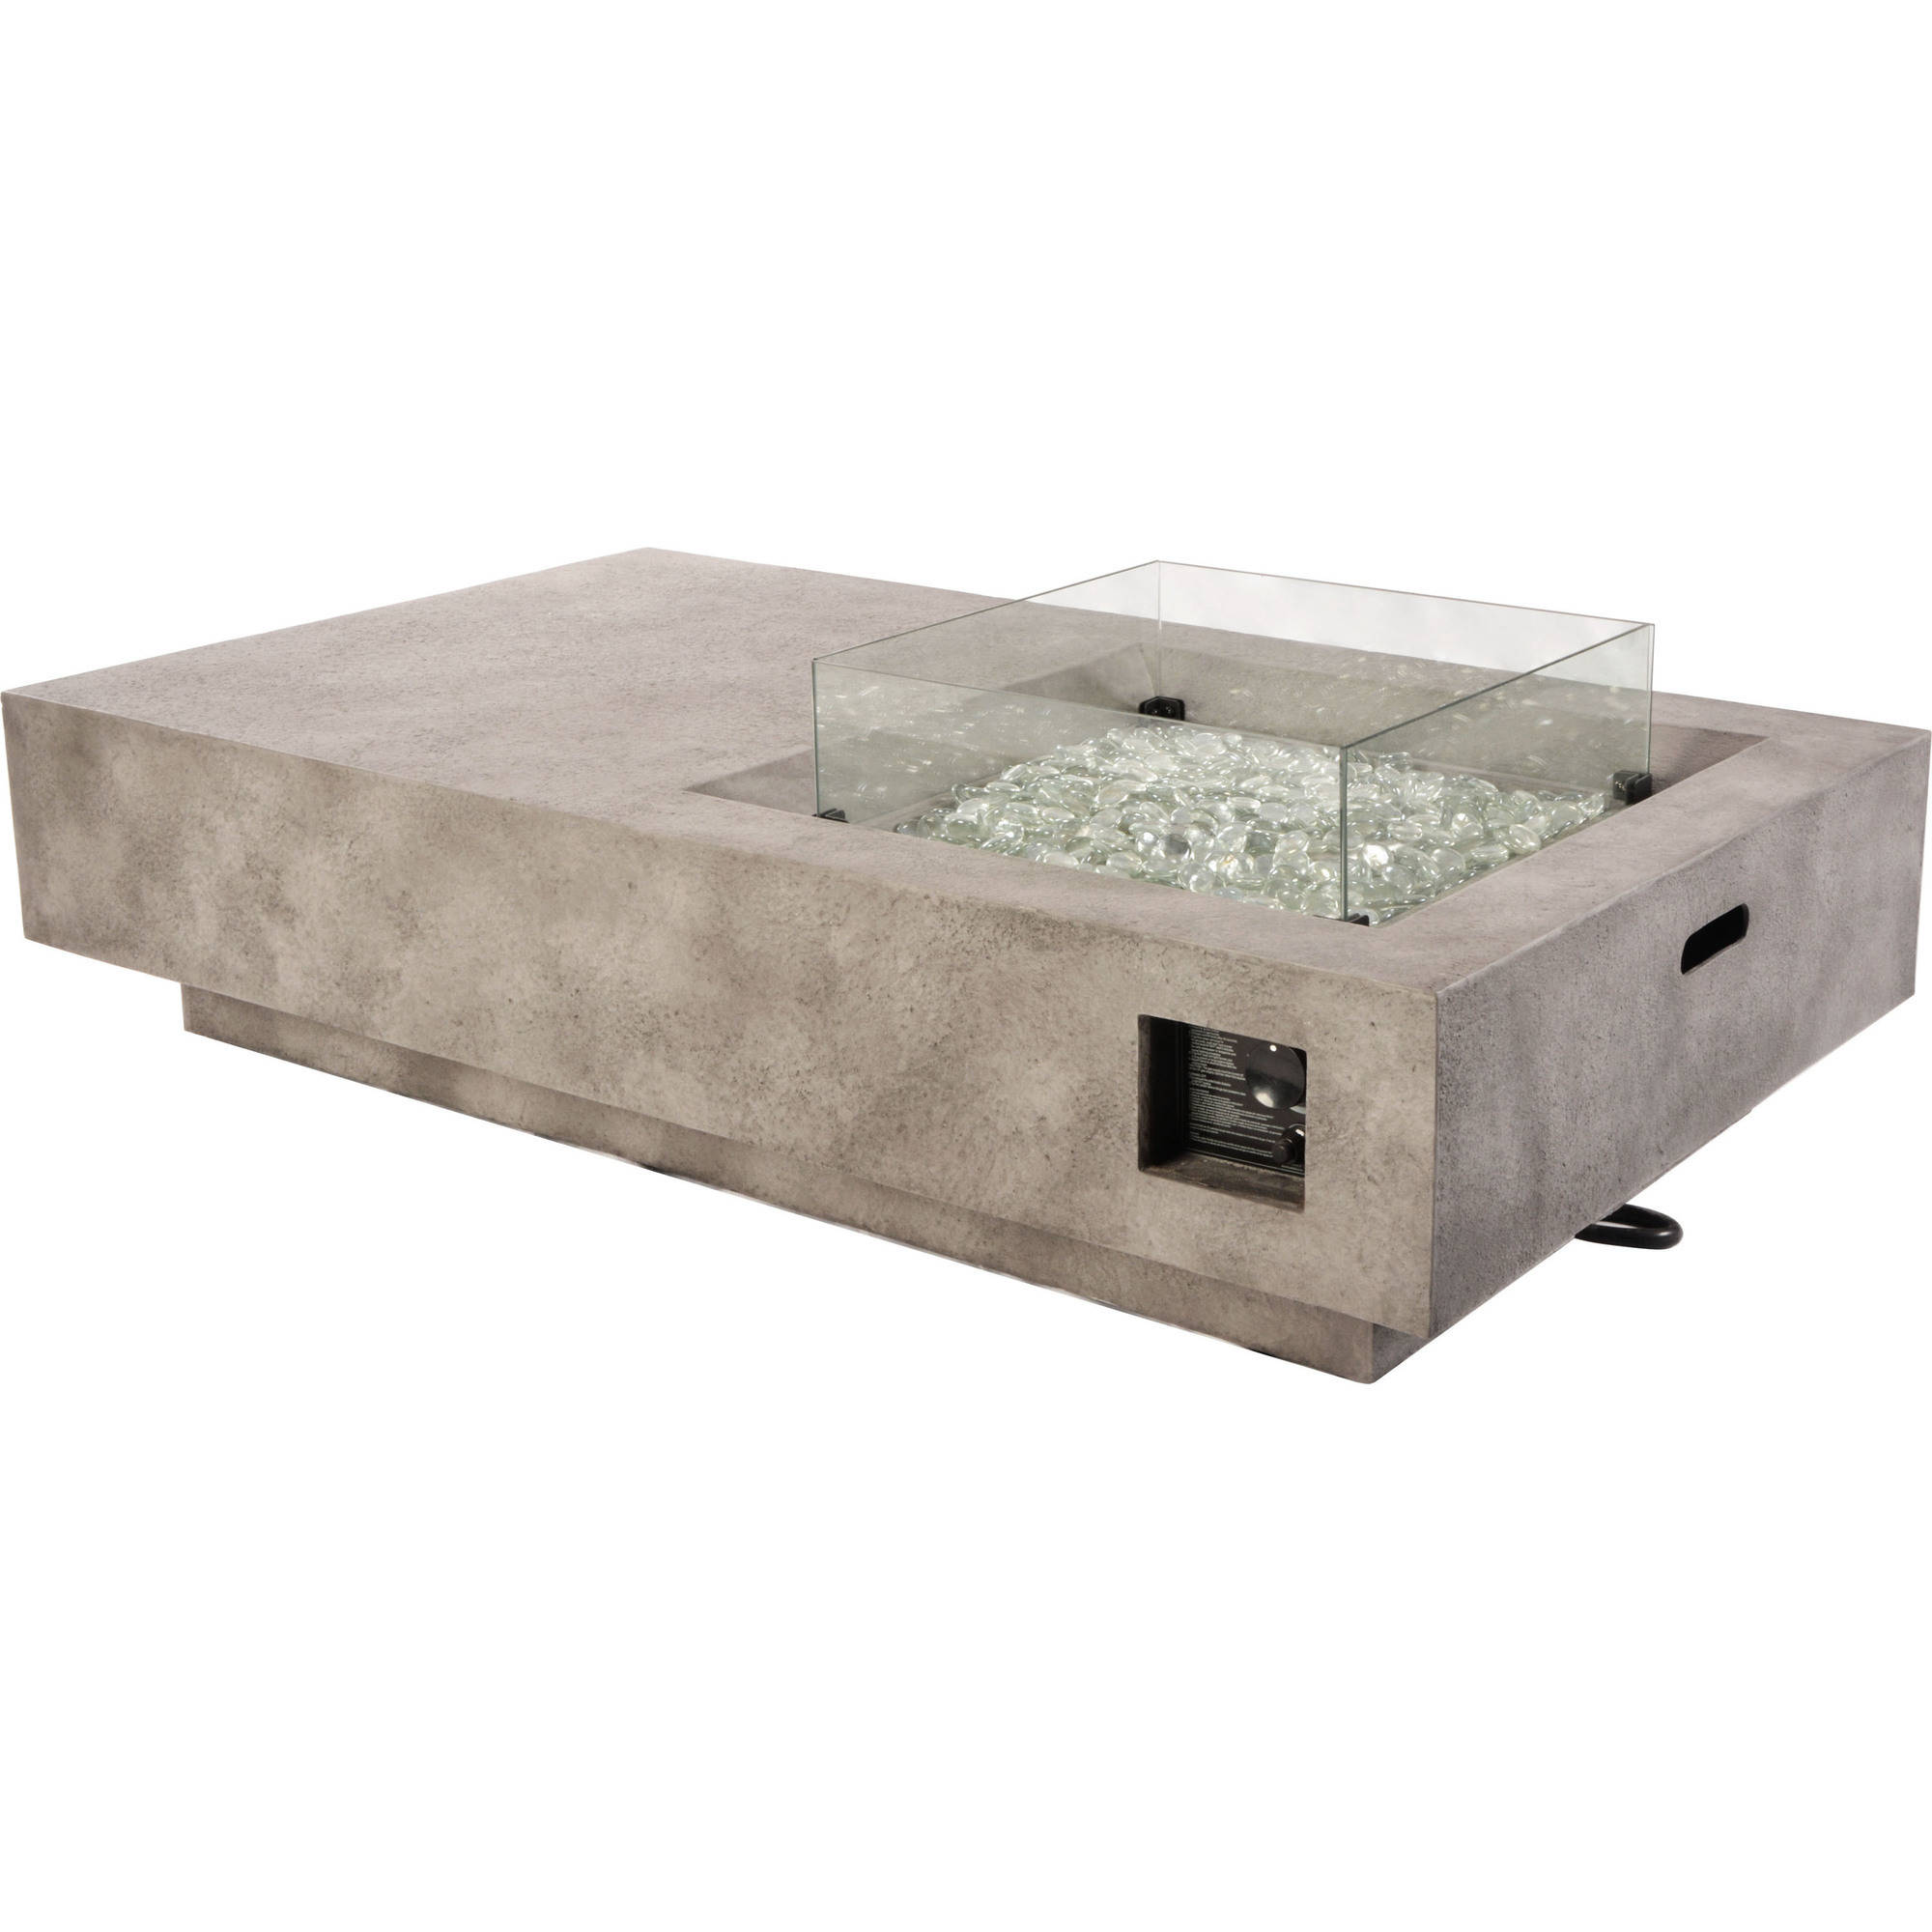 Bond Argent 60 Inch Fire Table $223.25 W/fs At Walmart.com. Was $499